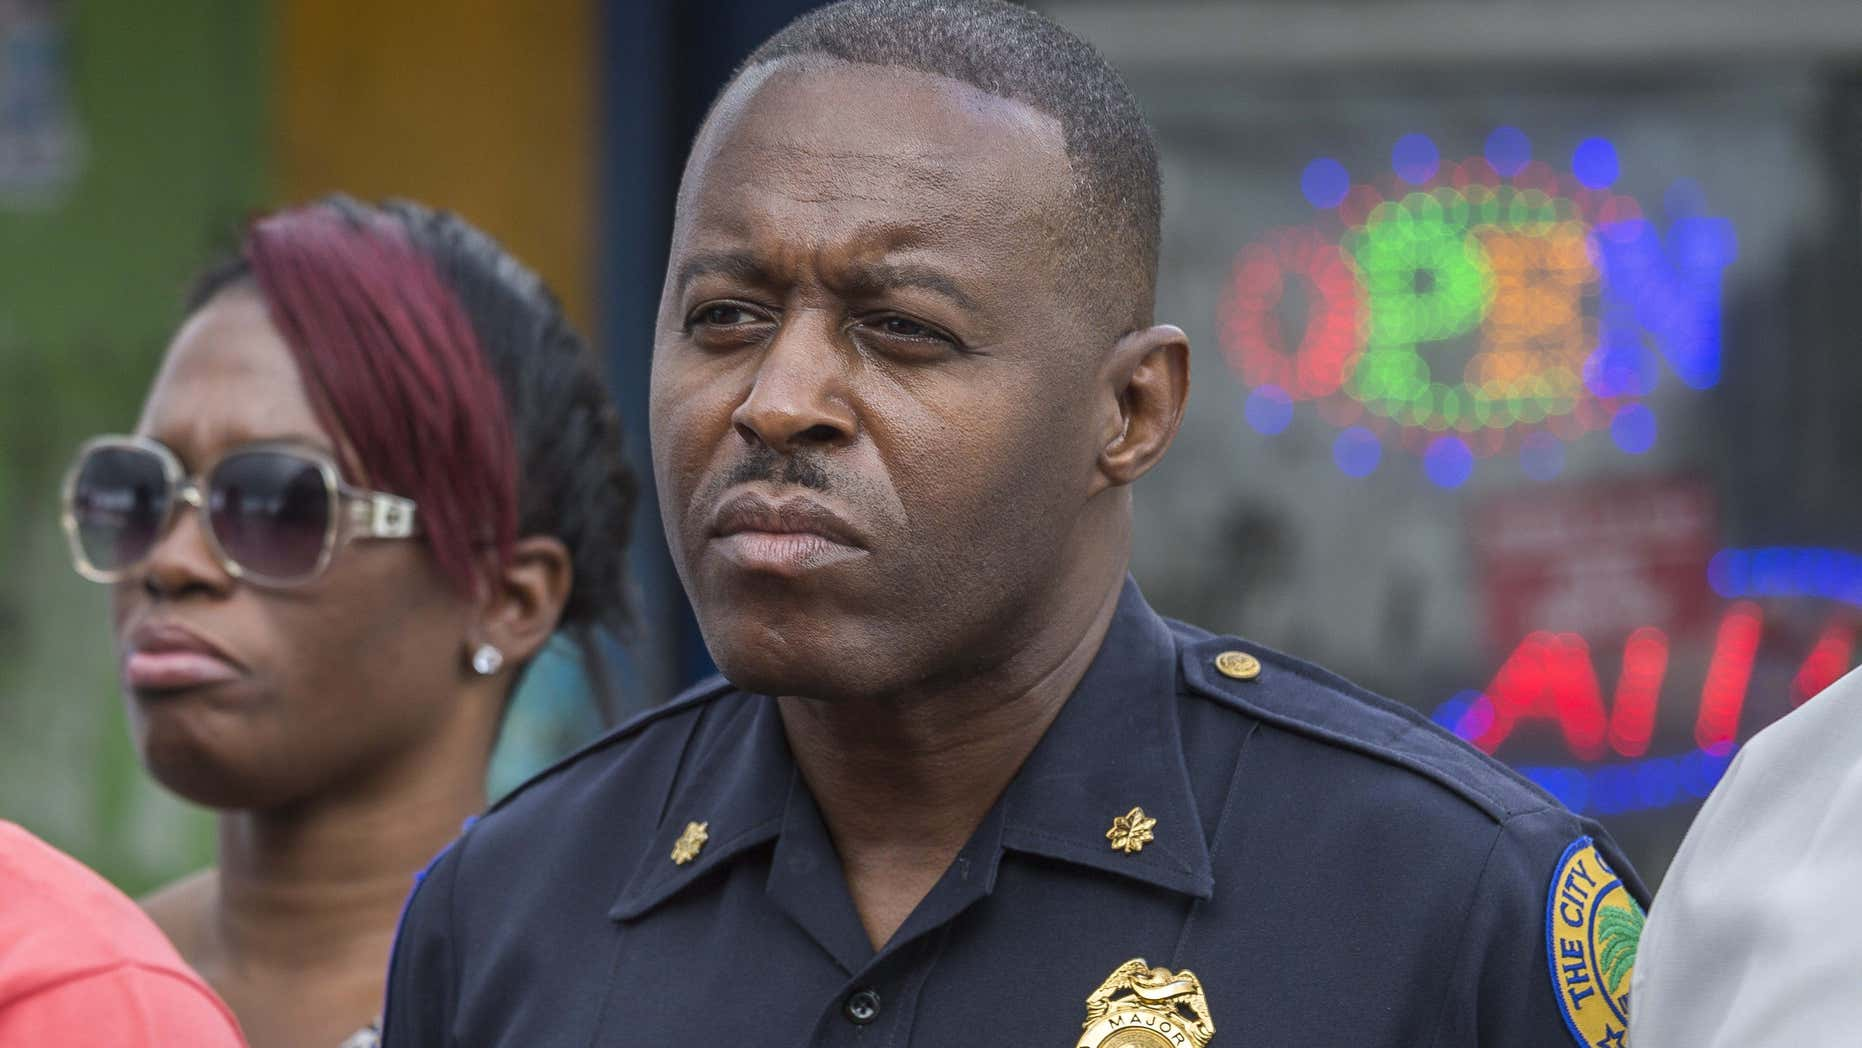 """In this Jan. 2, 2016, photo, Miami Police Maj. Delrish Moss stands among the Miami-Dade officials who announced the arrest of Willie """"Pee Wee"""" Wilcher in Liberty City, Fla."""